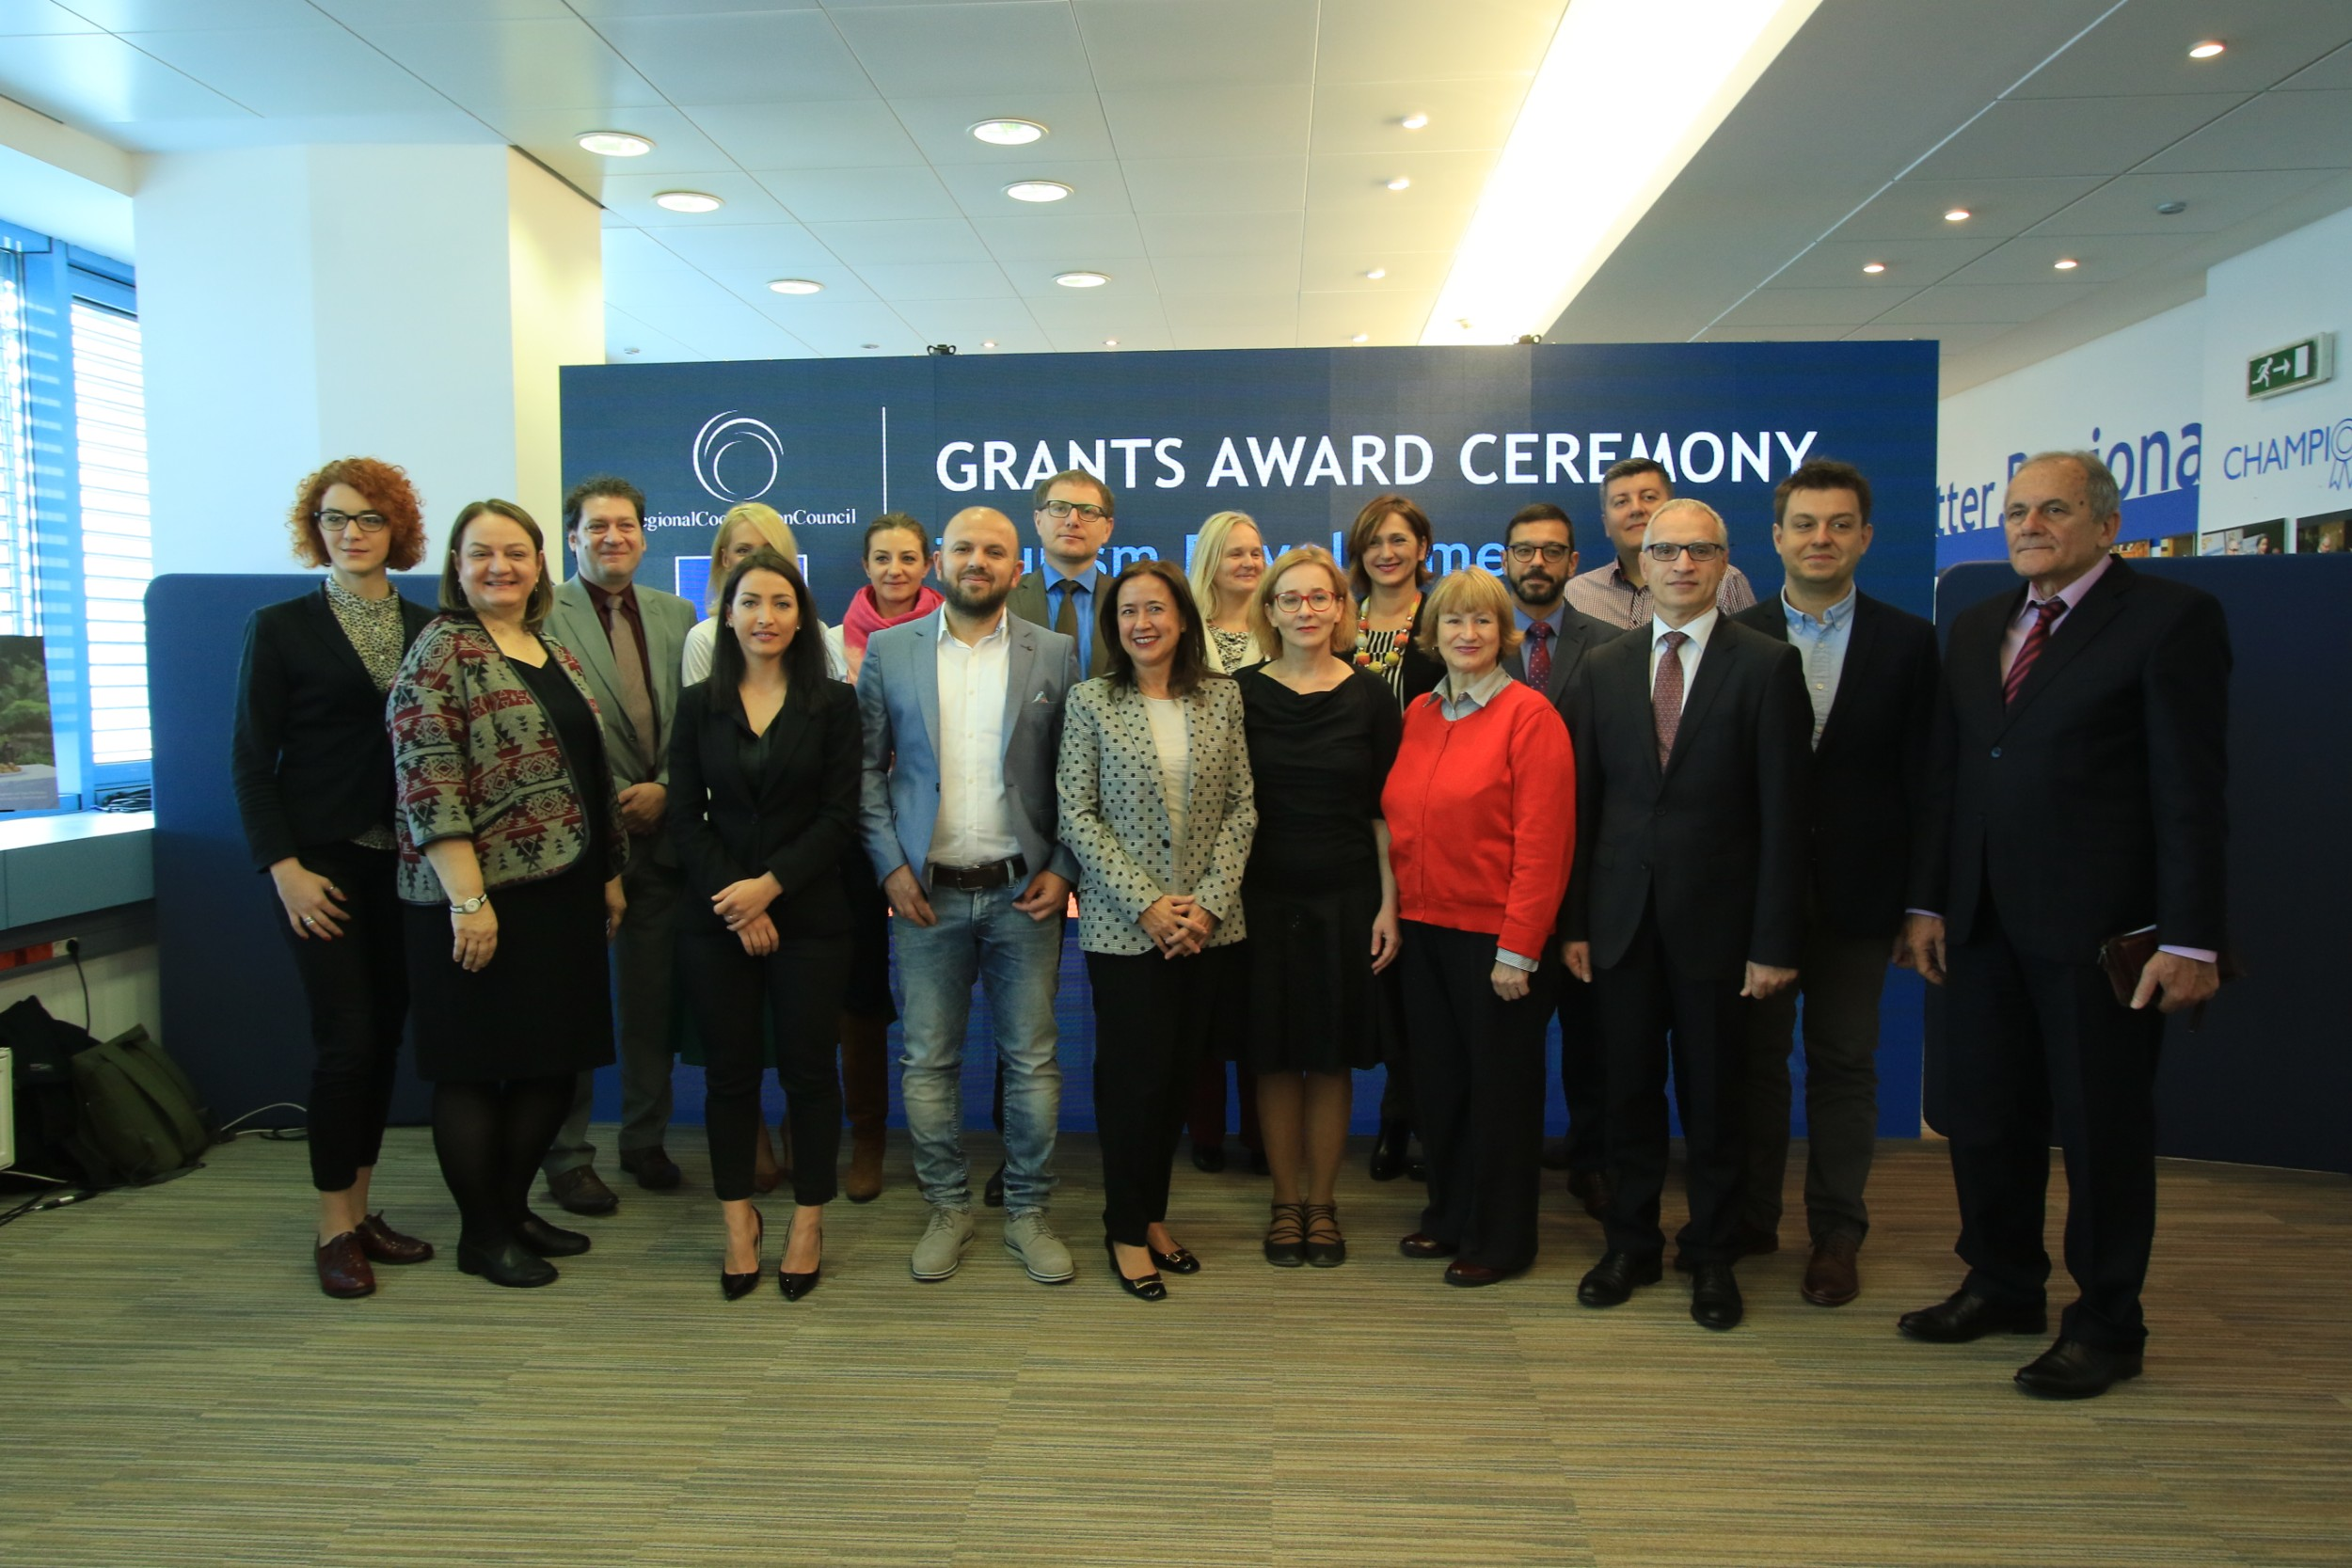 The Regional Cooperation Council (RCC)'s EU-funded Tourism Development and Promotion Project awarded the first twelve grants that will contribute to the expansion of the tourism offer in the region, in Sarajevo on 9 November 2018 (Photo: RCC/Armin Durgut)